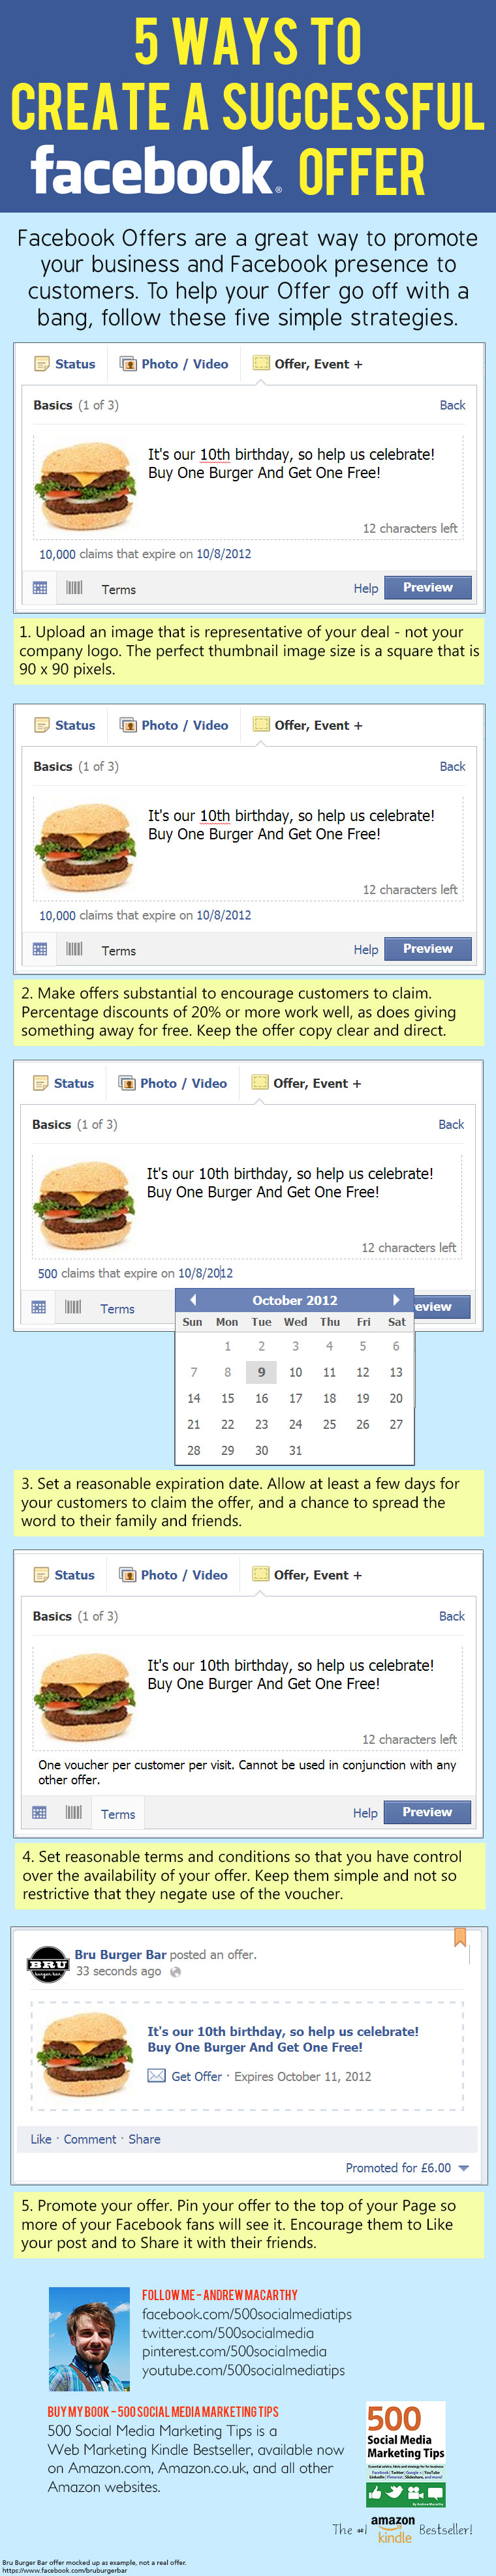 5 Ways to Create A Successful Facebook Offer [INFOGRAPHIC] #socialmedia #infographic